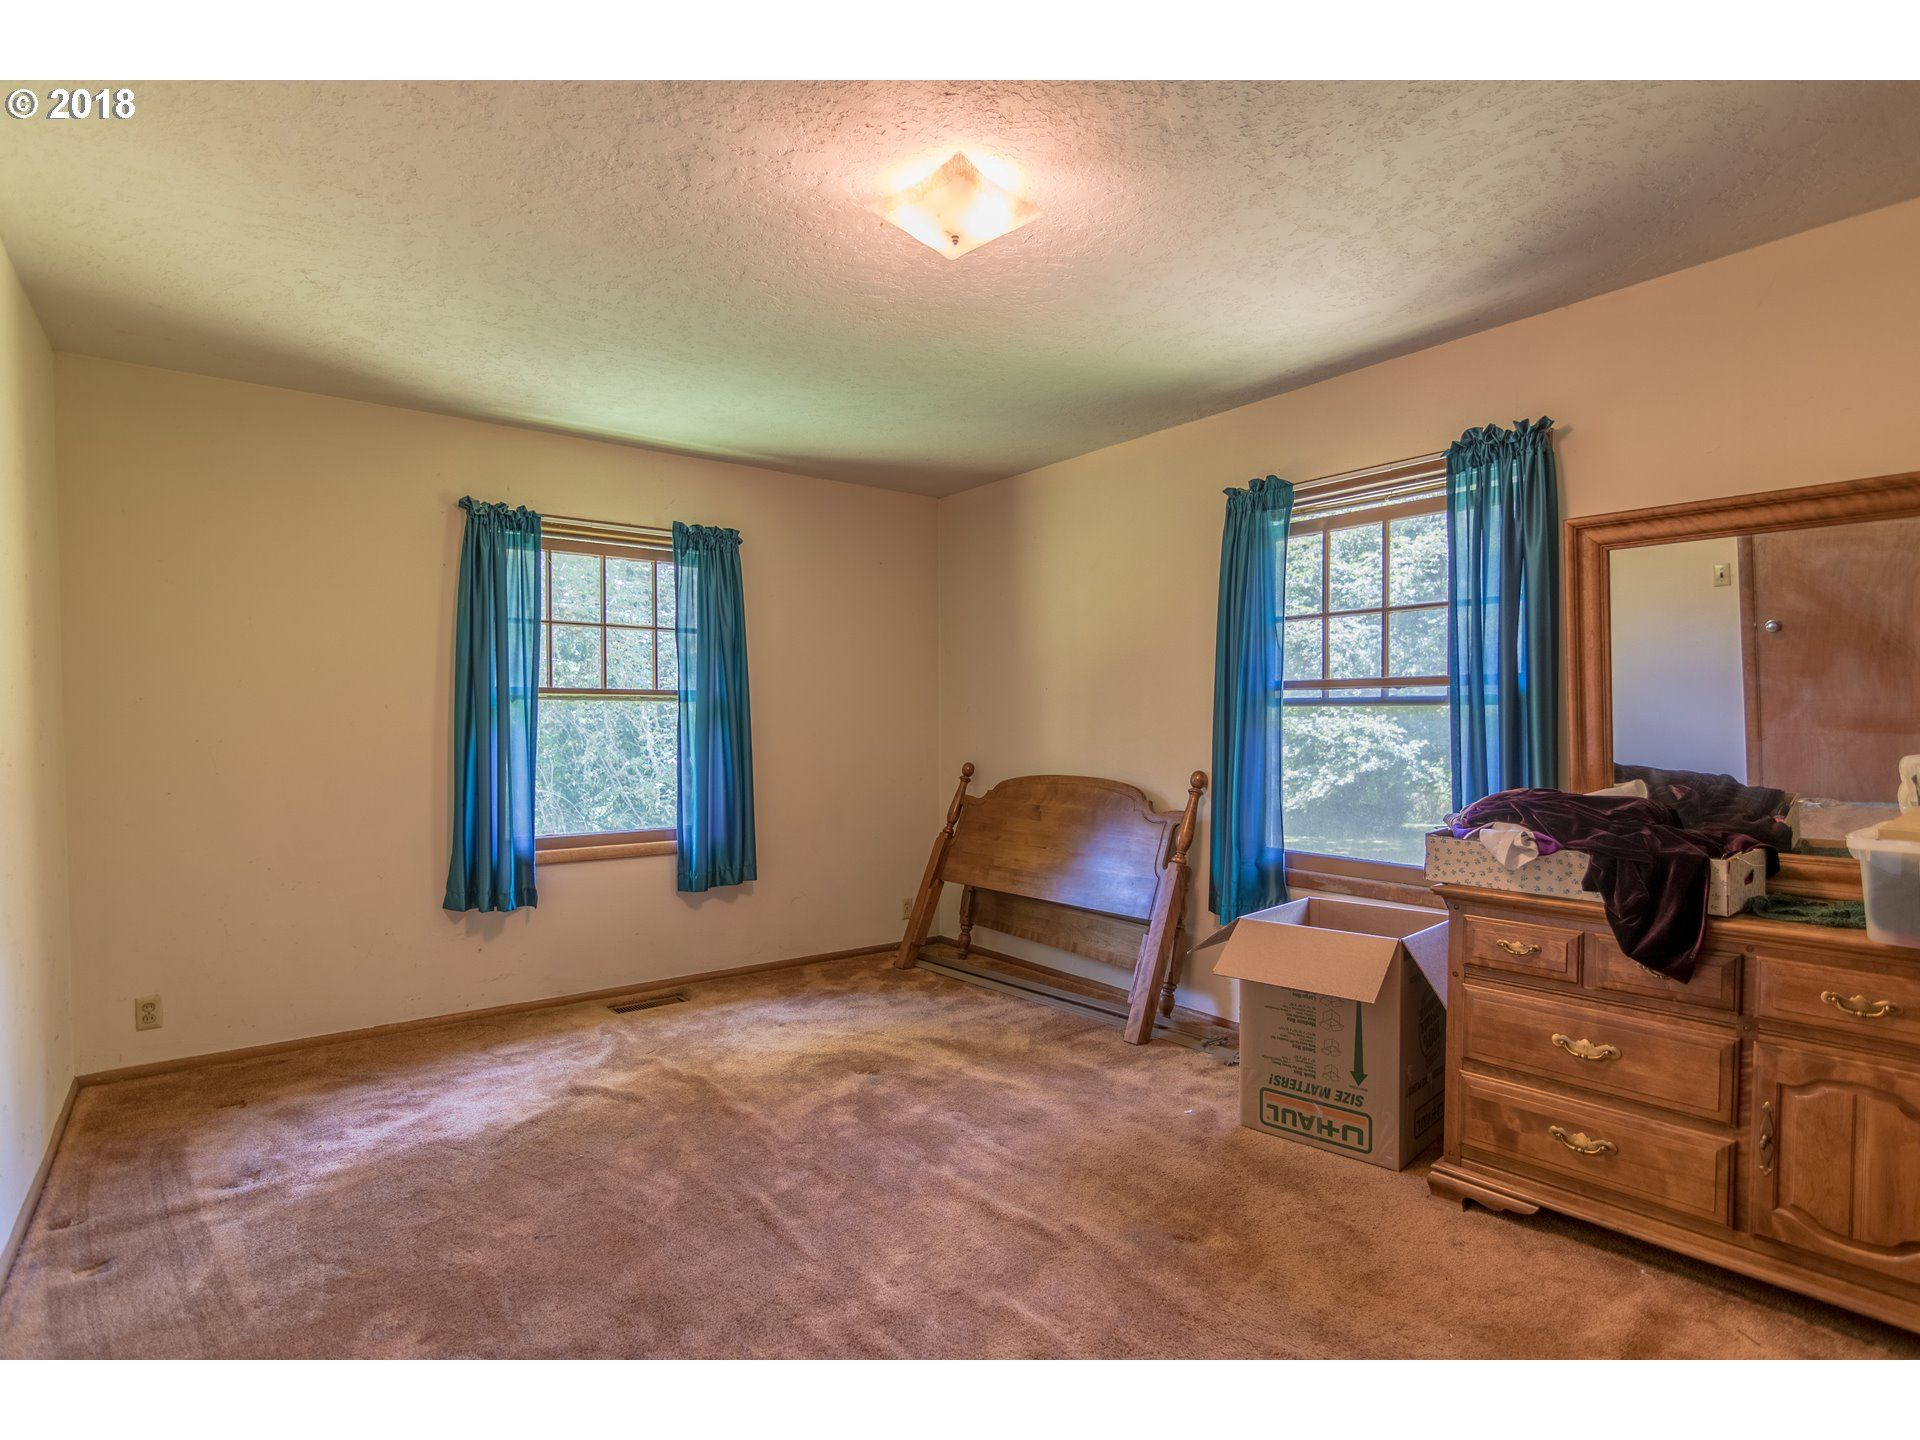 9655 SW 74th Ave, Tigard, OR 97223 - 3 Bed, 1 Bath Single